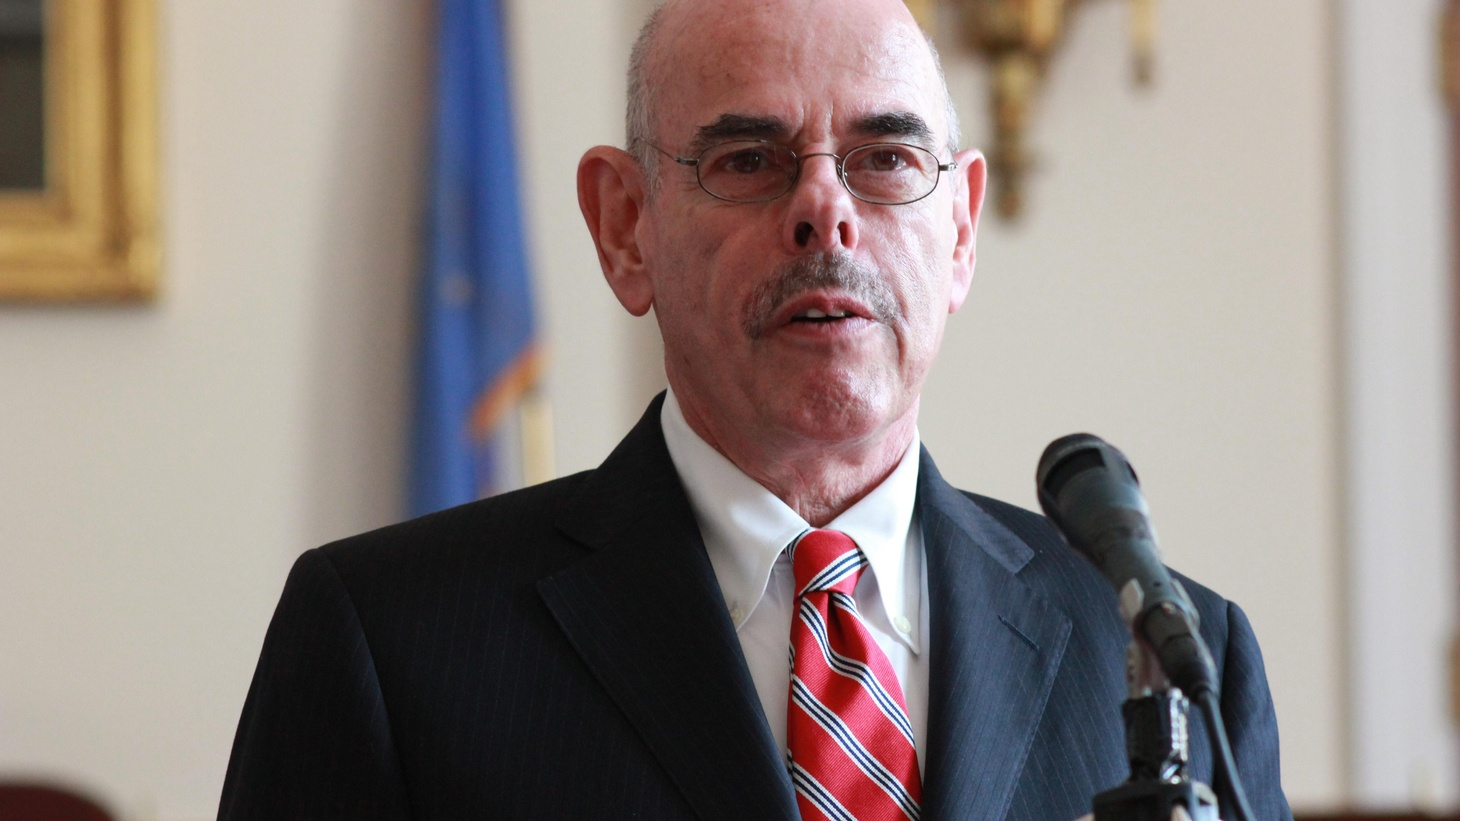 Today we discuss a surprise retirement announcement from U.S. Representative Henry Waxman, talk to a local U.S. luge team member headed to Sochi, and more.